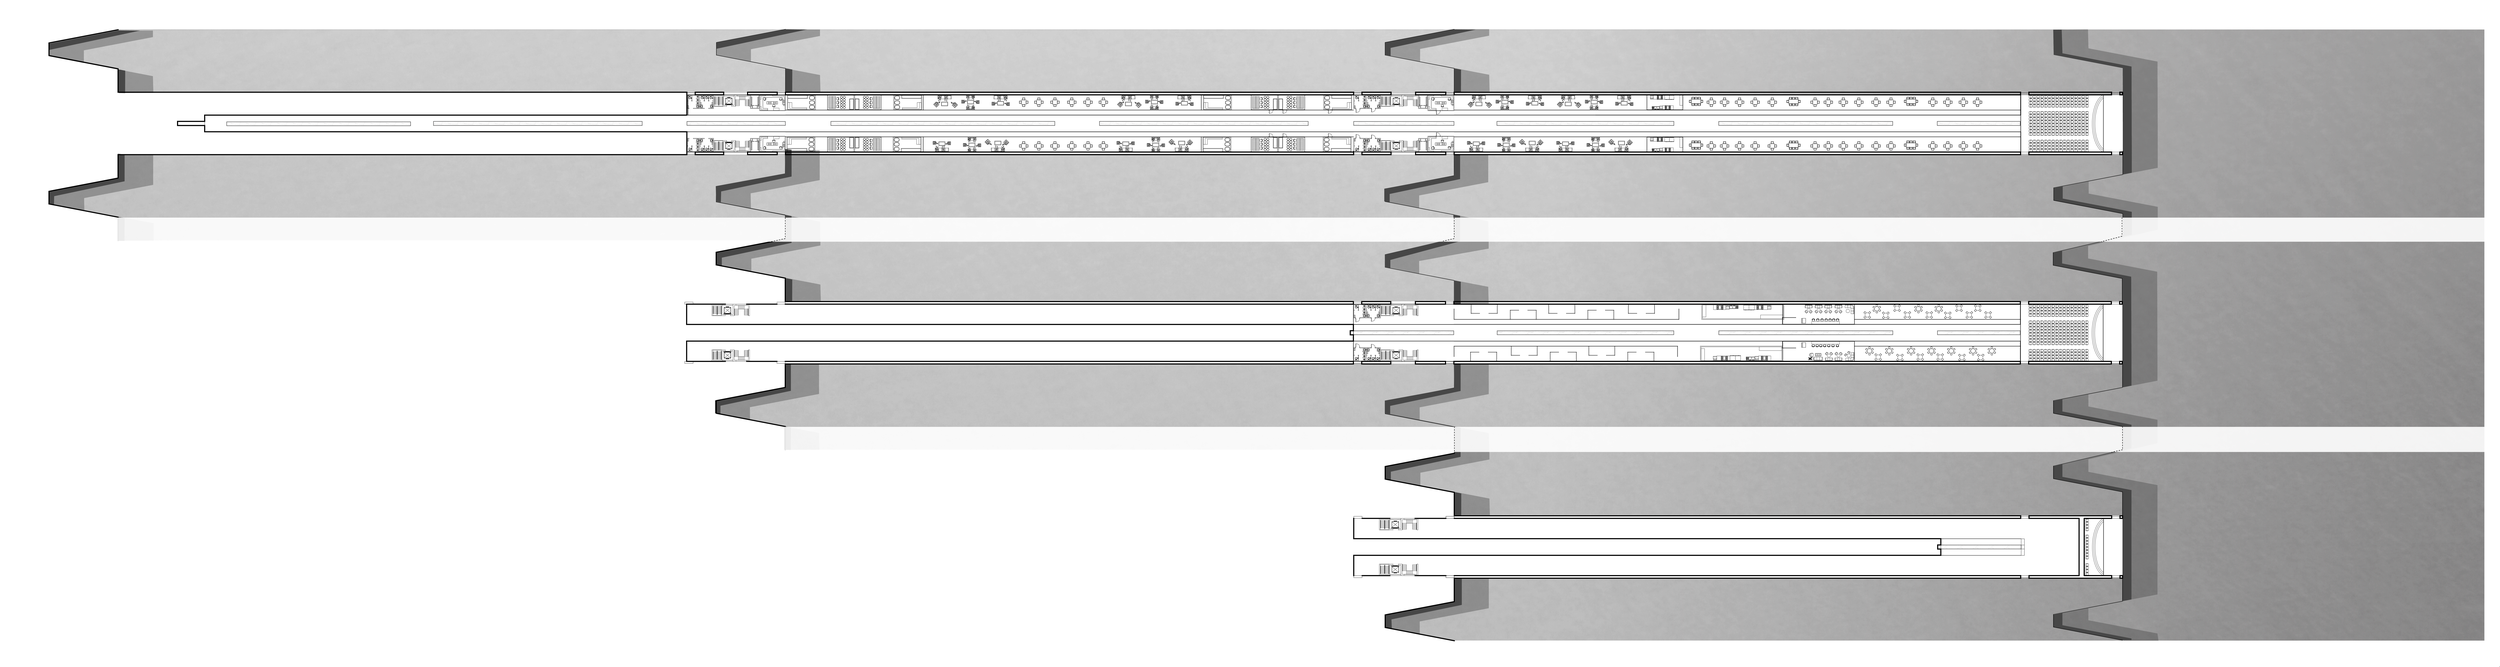 Plans of first, second, and third 'layers' of inhabitable retaining wall, as they peel off from the descending path.